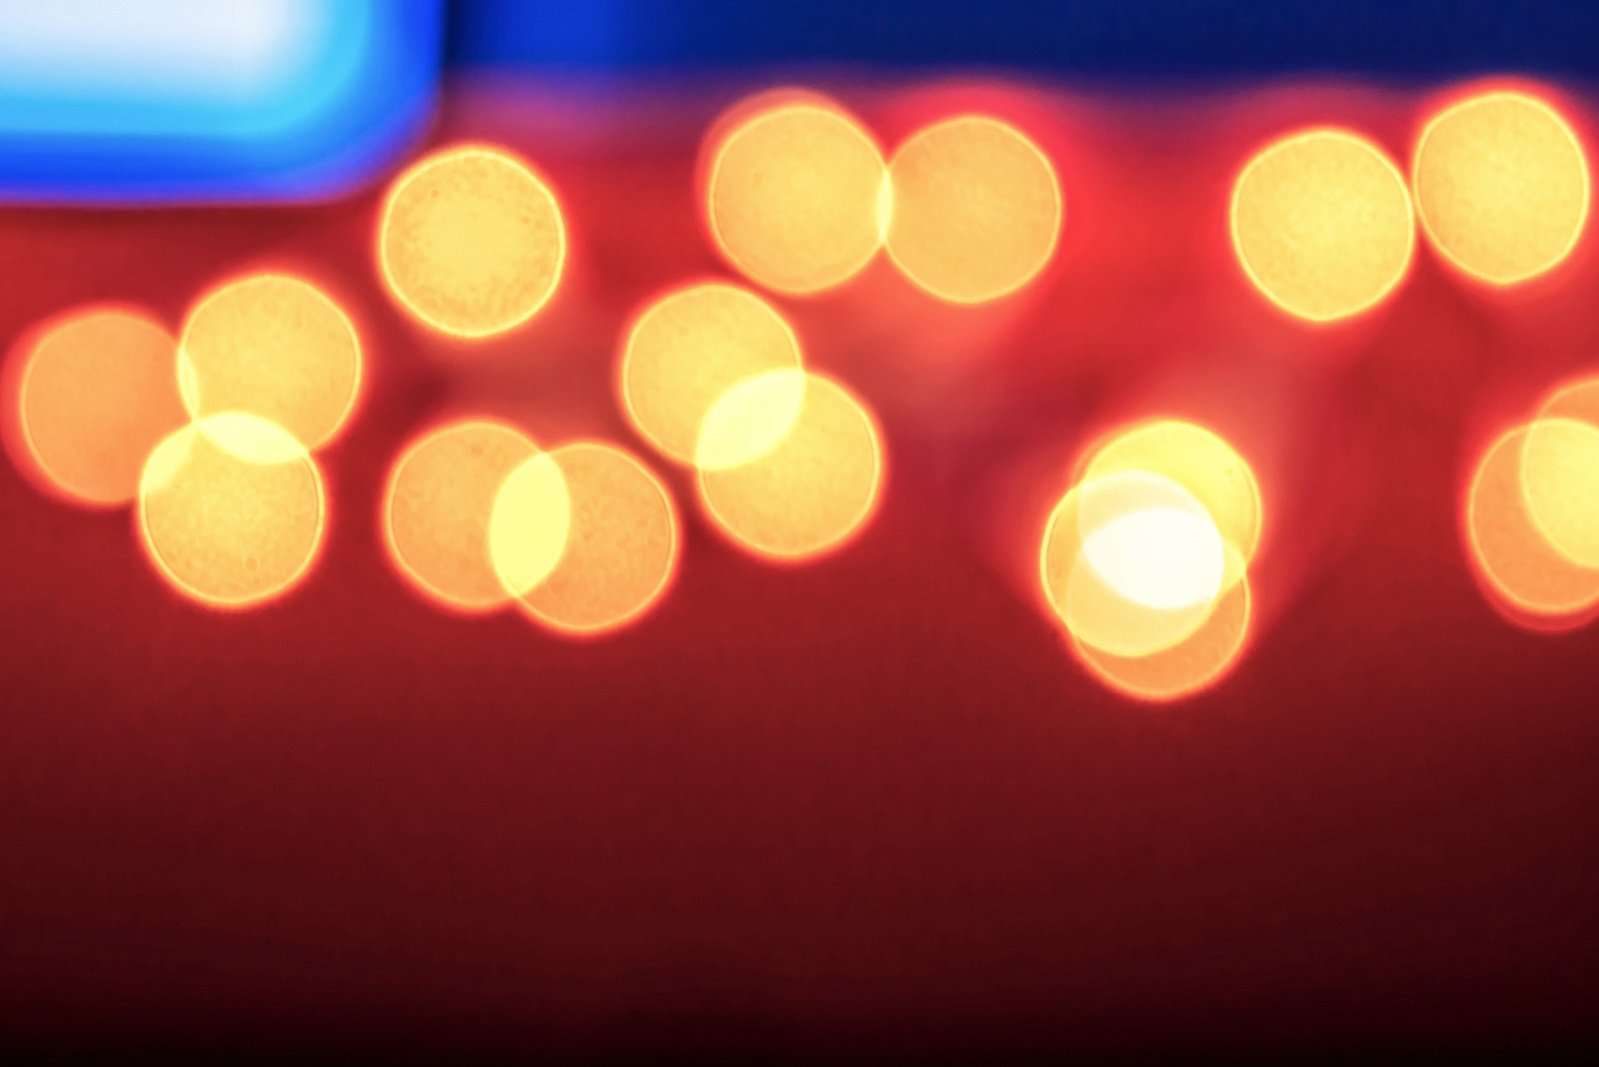 Bokeh Effect Backgrounds: Free Abstract Background Of Blurred Lights With Bokeh